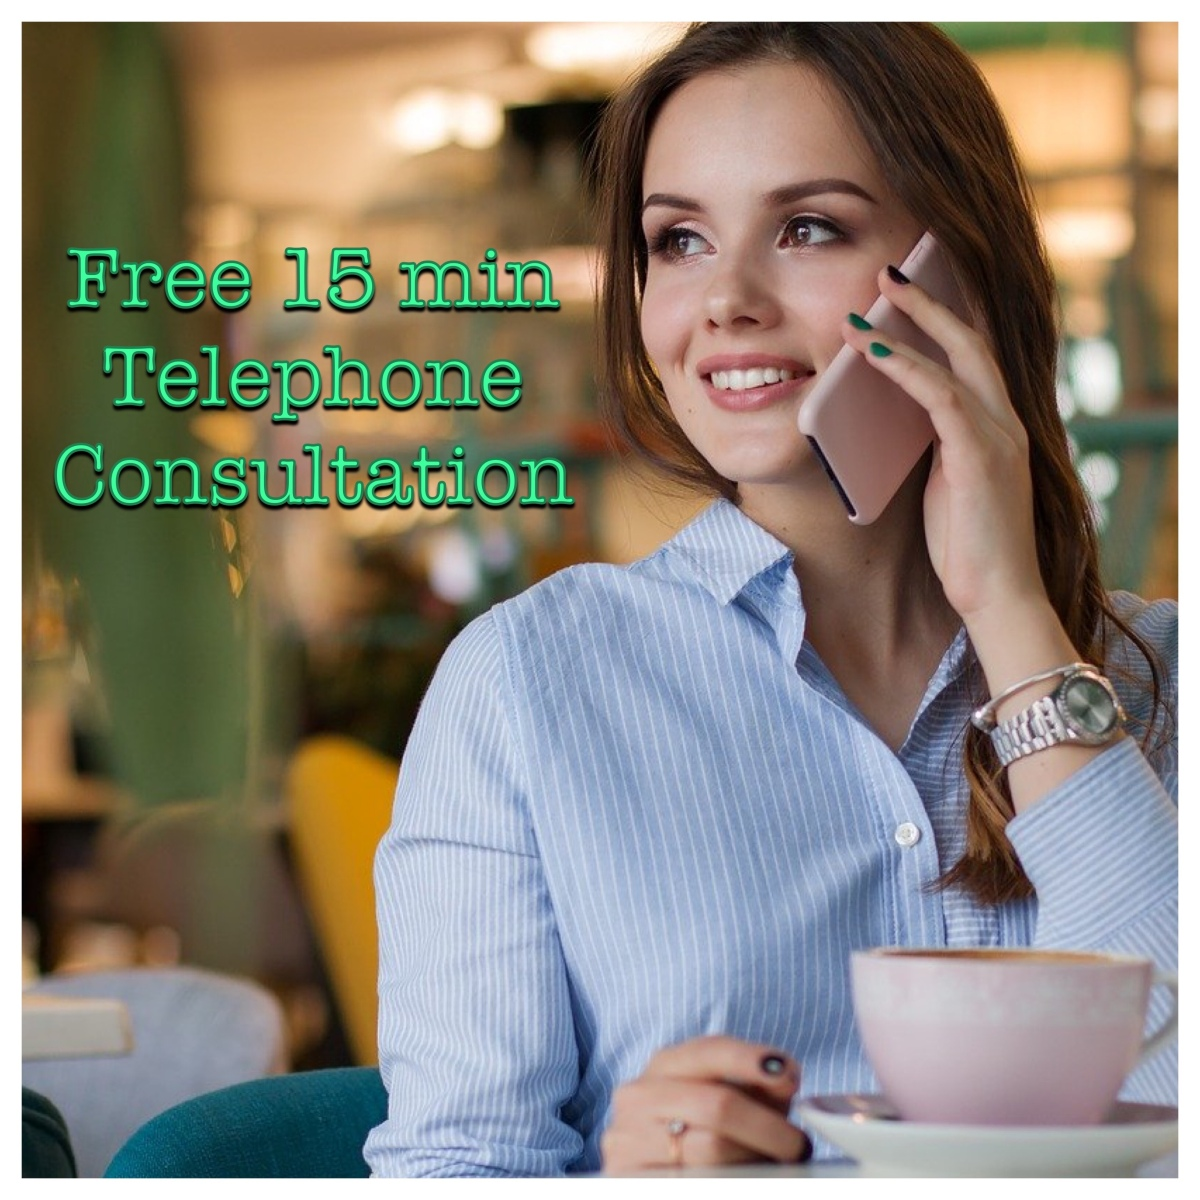 Free 15 min Telephone Consultation Logo (Woman on phone)